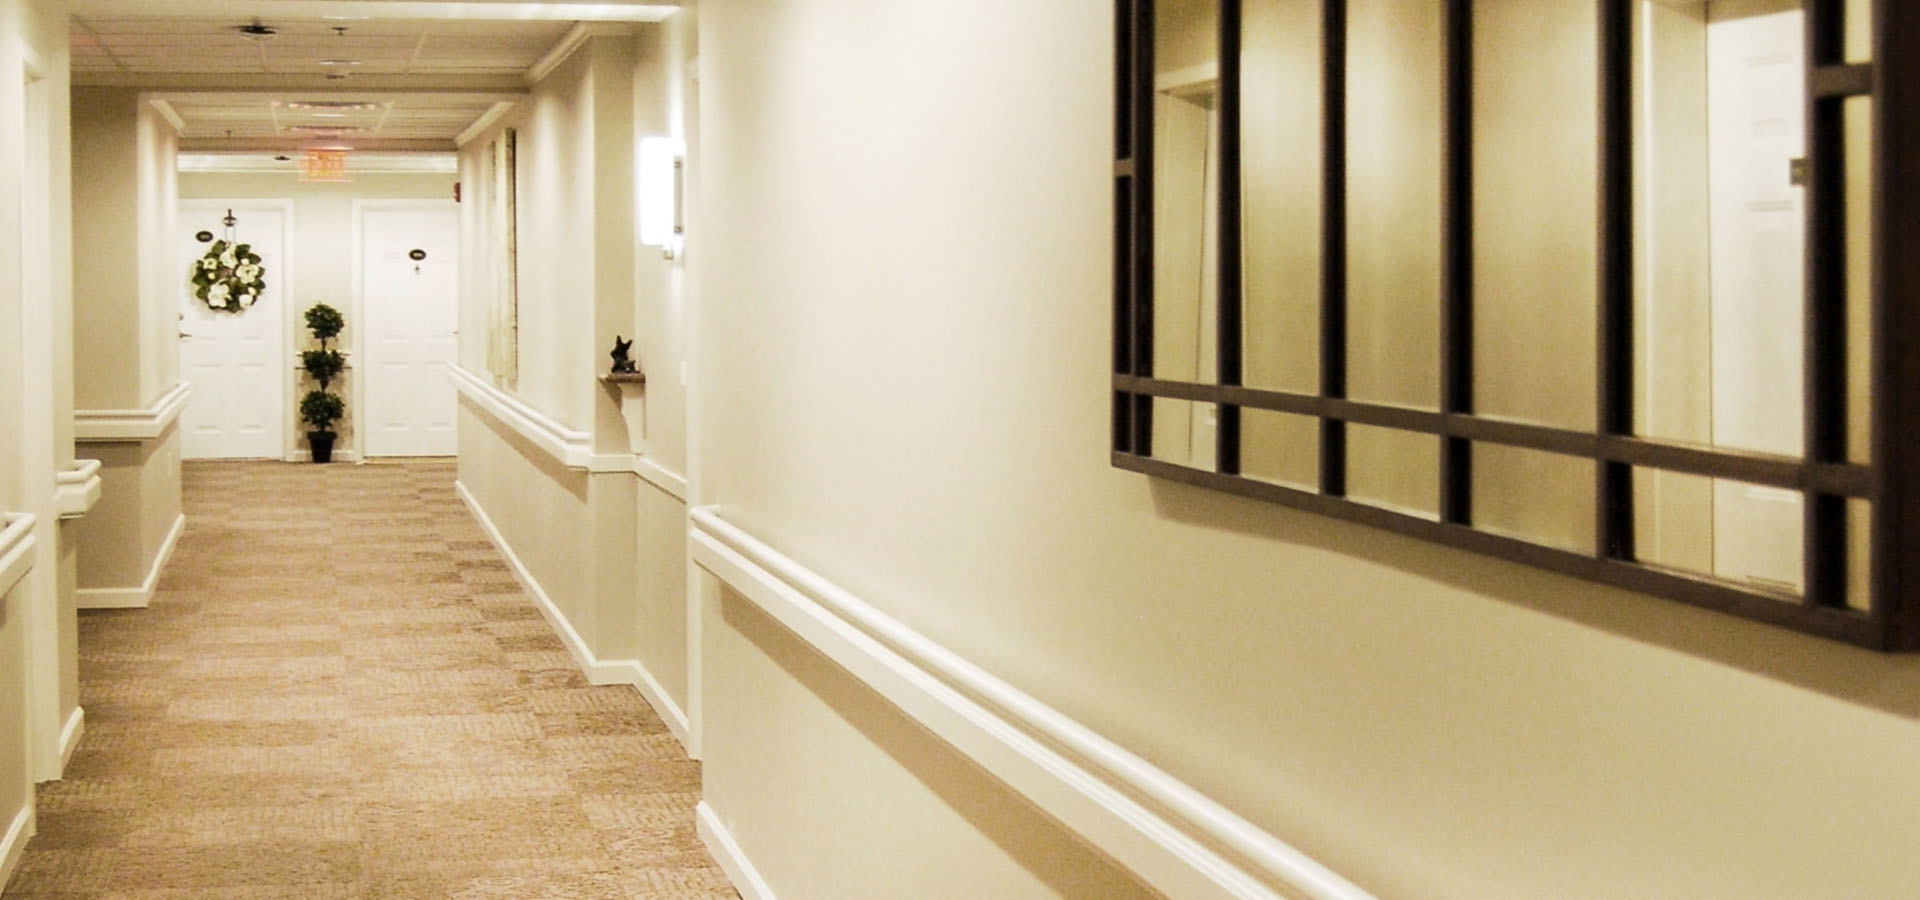 Magnolia Trace | Hallway Renovation | Brindley Construction